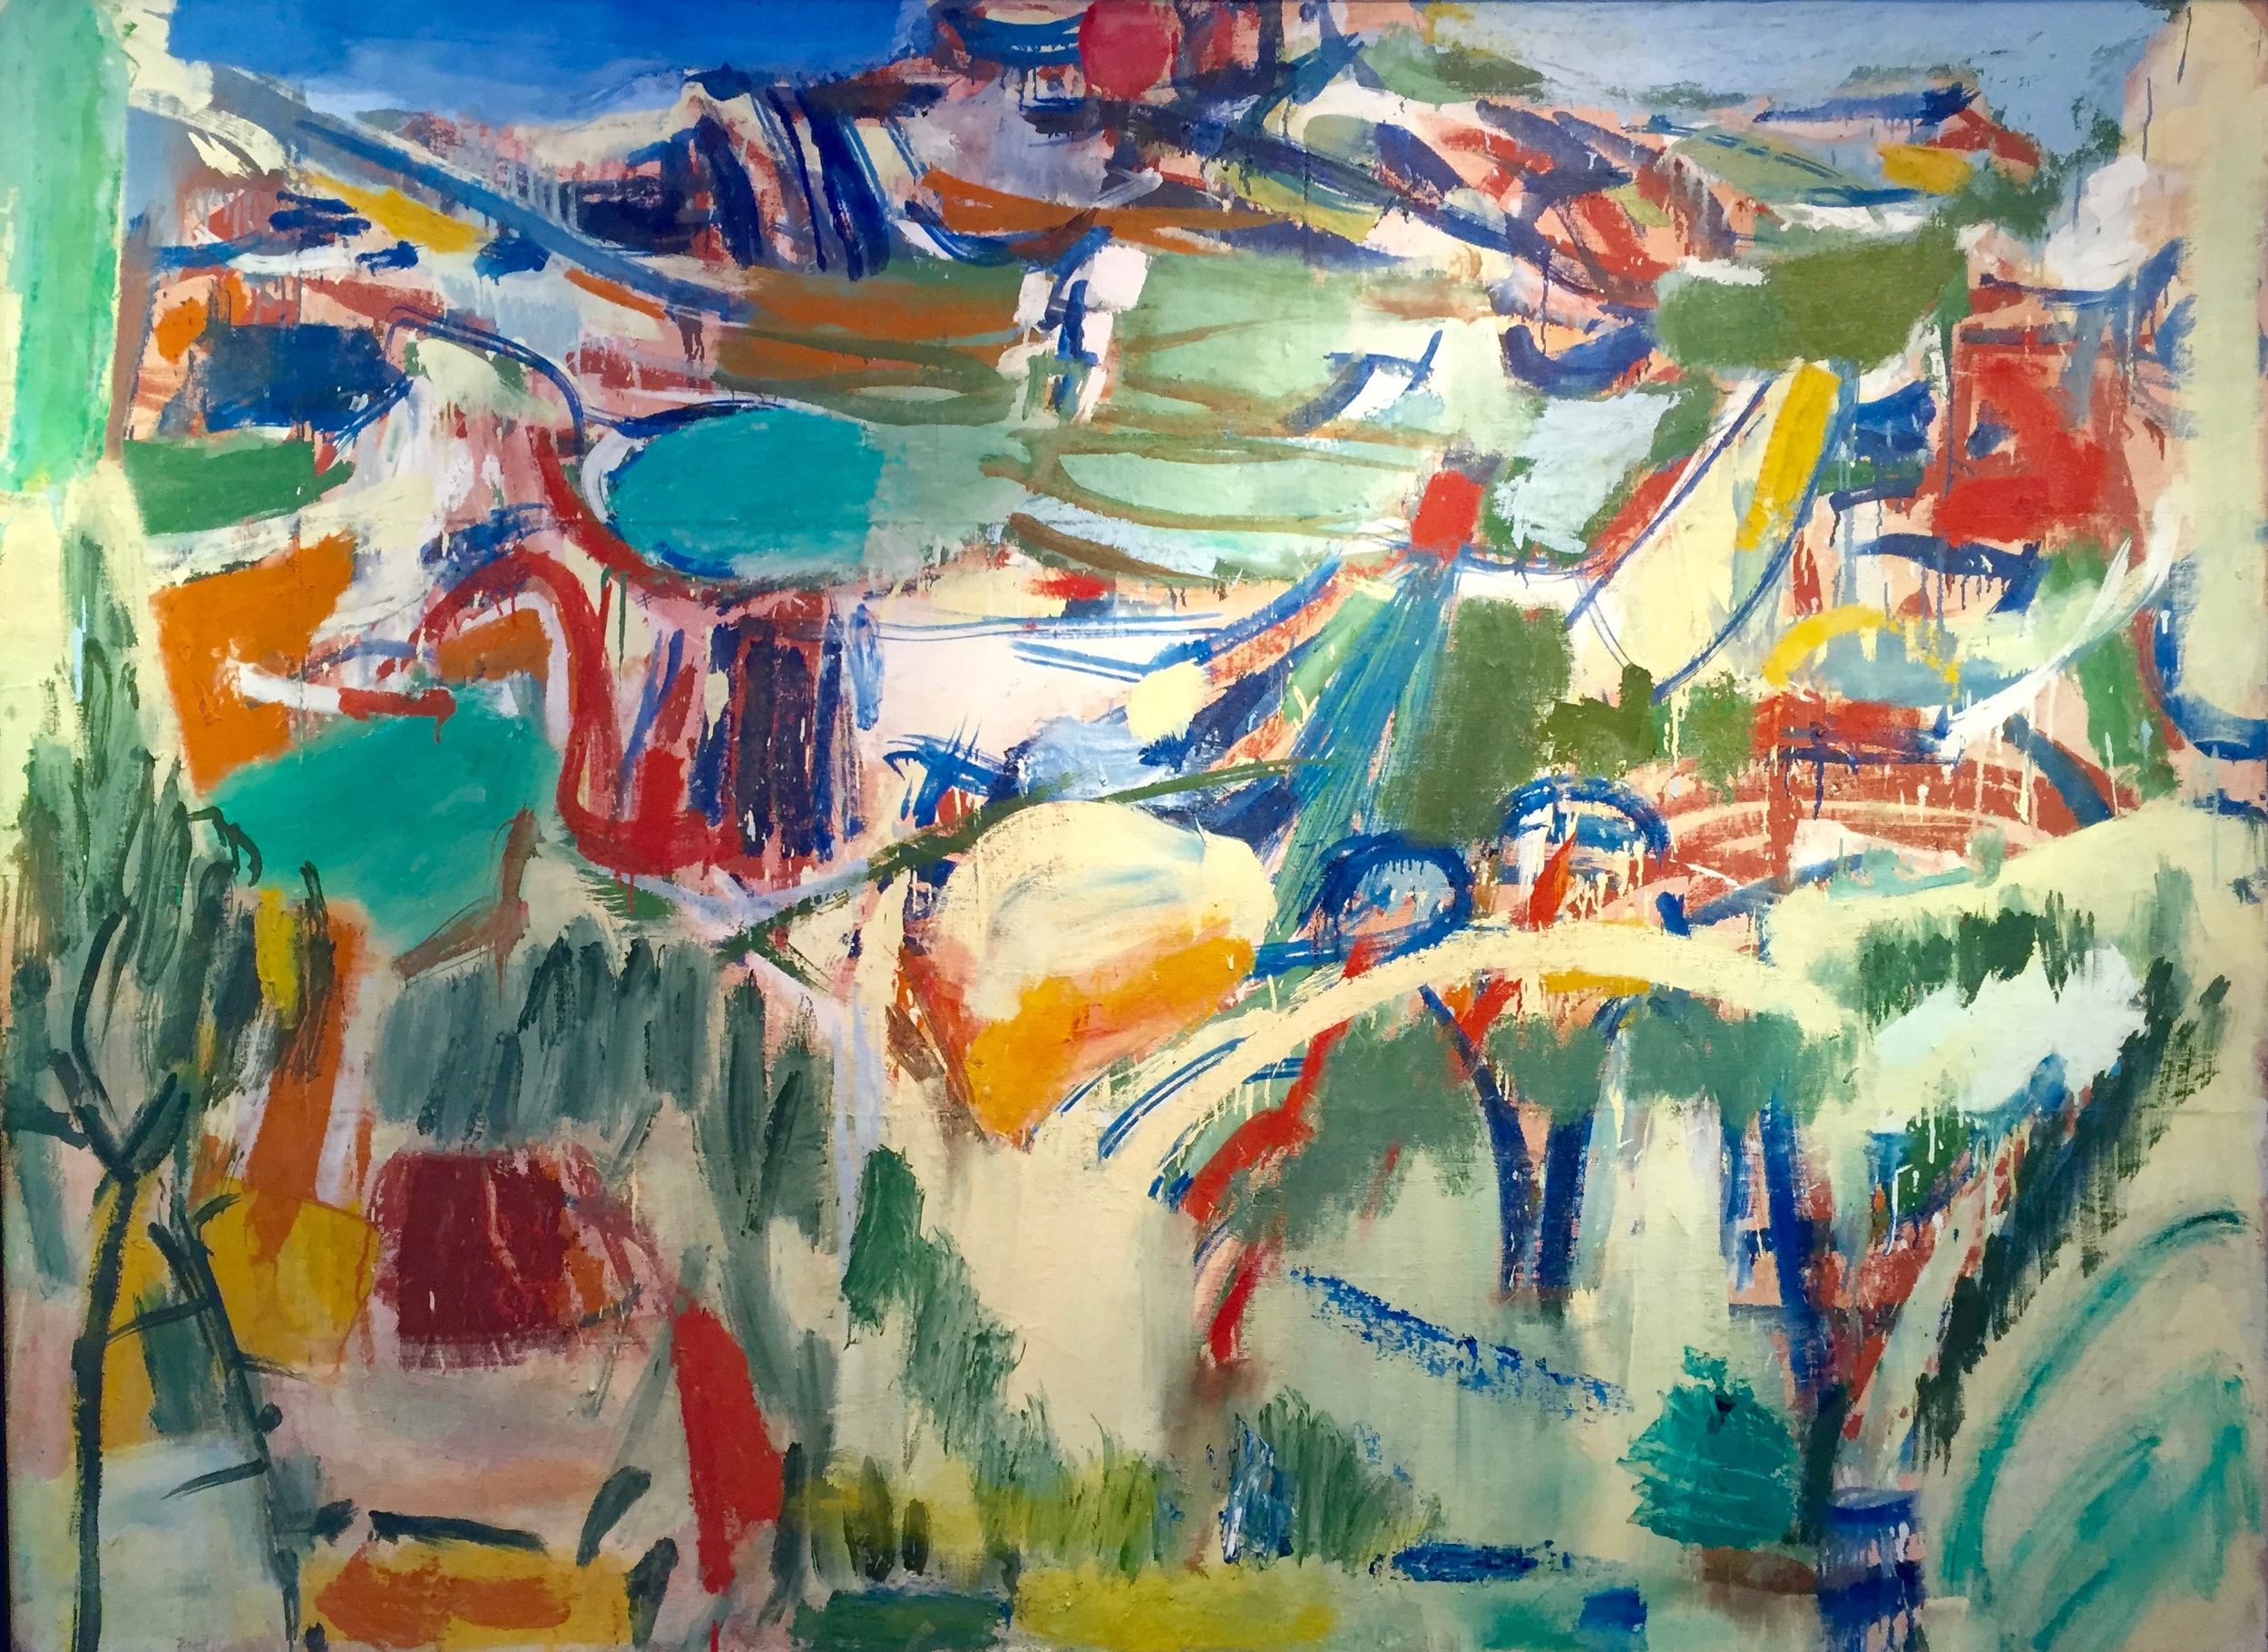 Mountain scene, ca. 1950–1959    Medium: Paintings, Oil on canvas   Size: 50 x 68 in. (127 x 172.7 cm.)